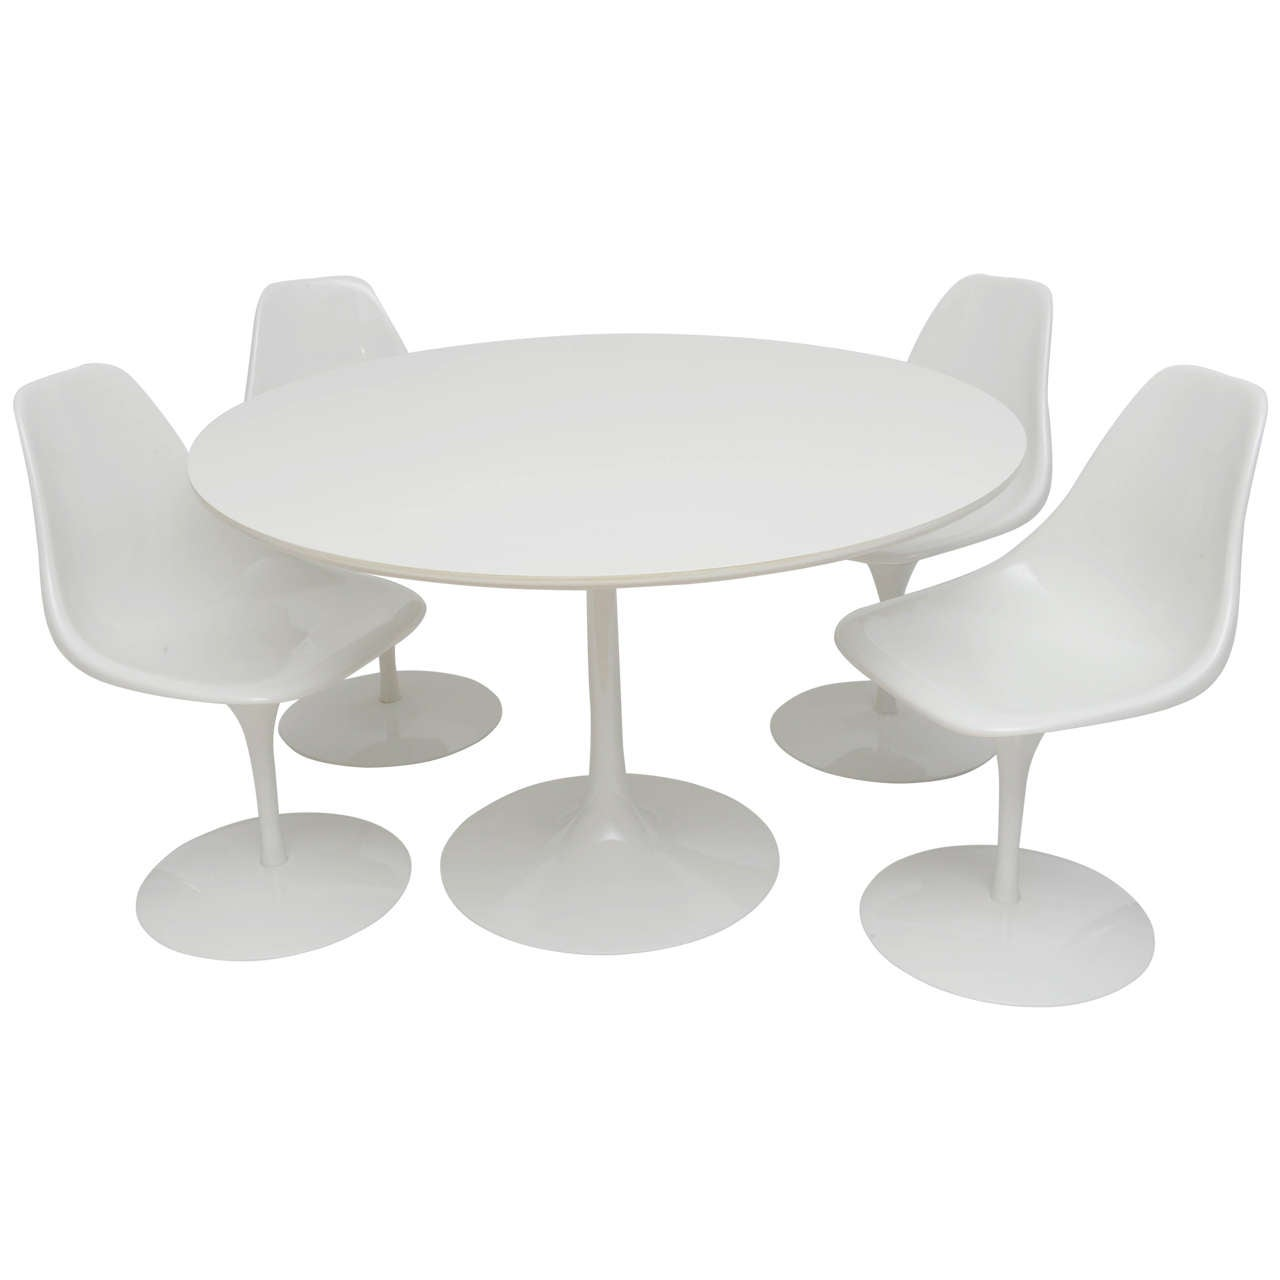 Tulip Table And Chairs Knoll Tulip Dining Table With Four Chairs At 1stdibs